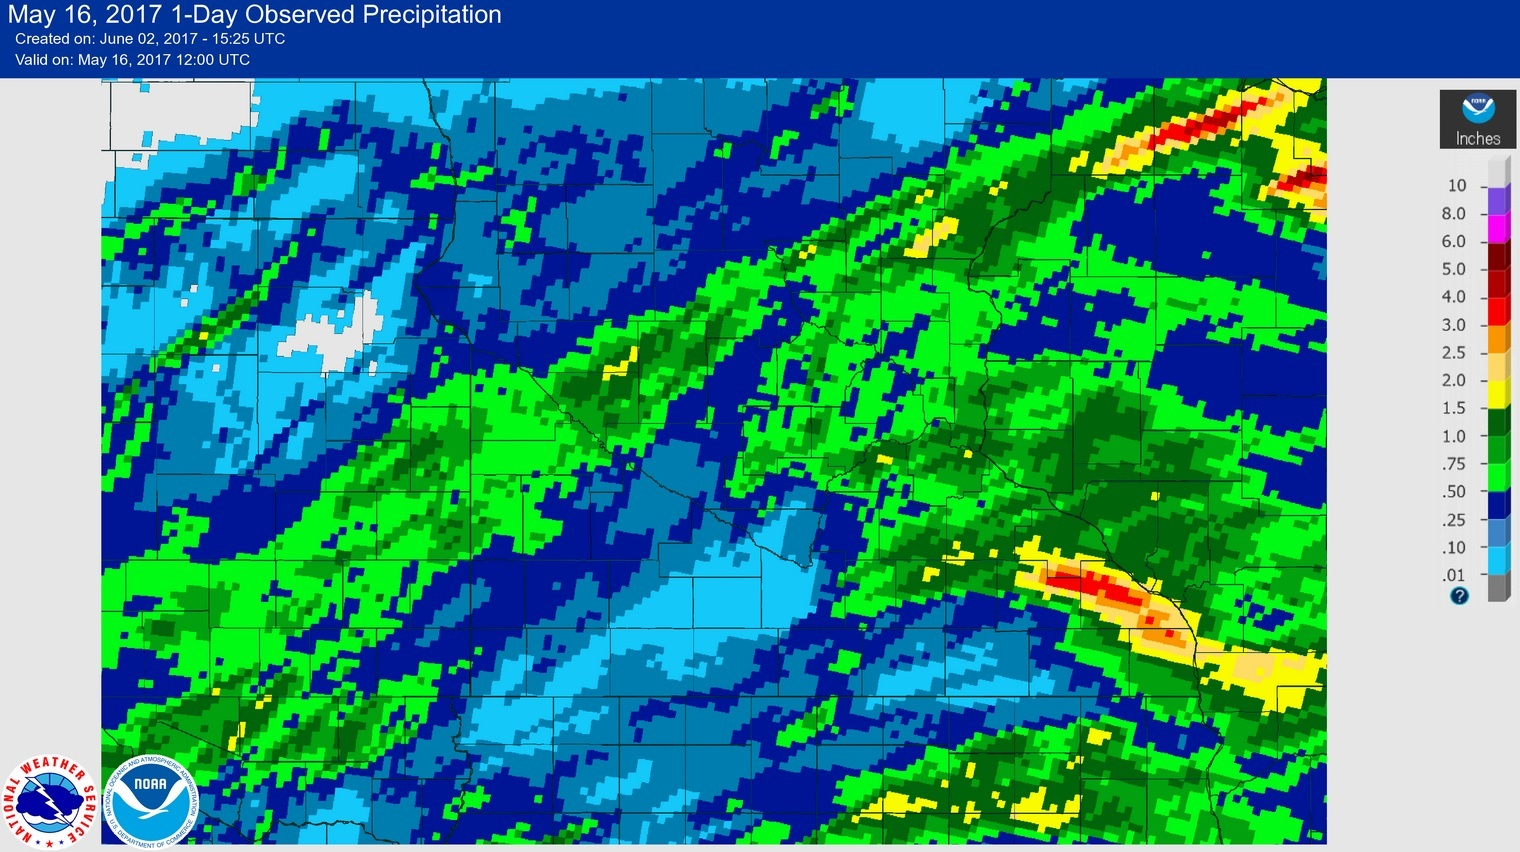 Rainfall for the 24 hour period ending at 7am on May 16, 2017